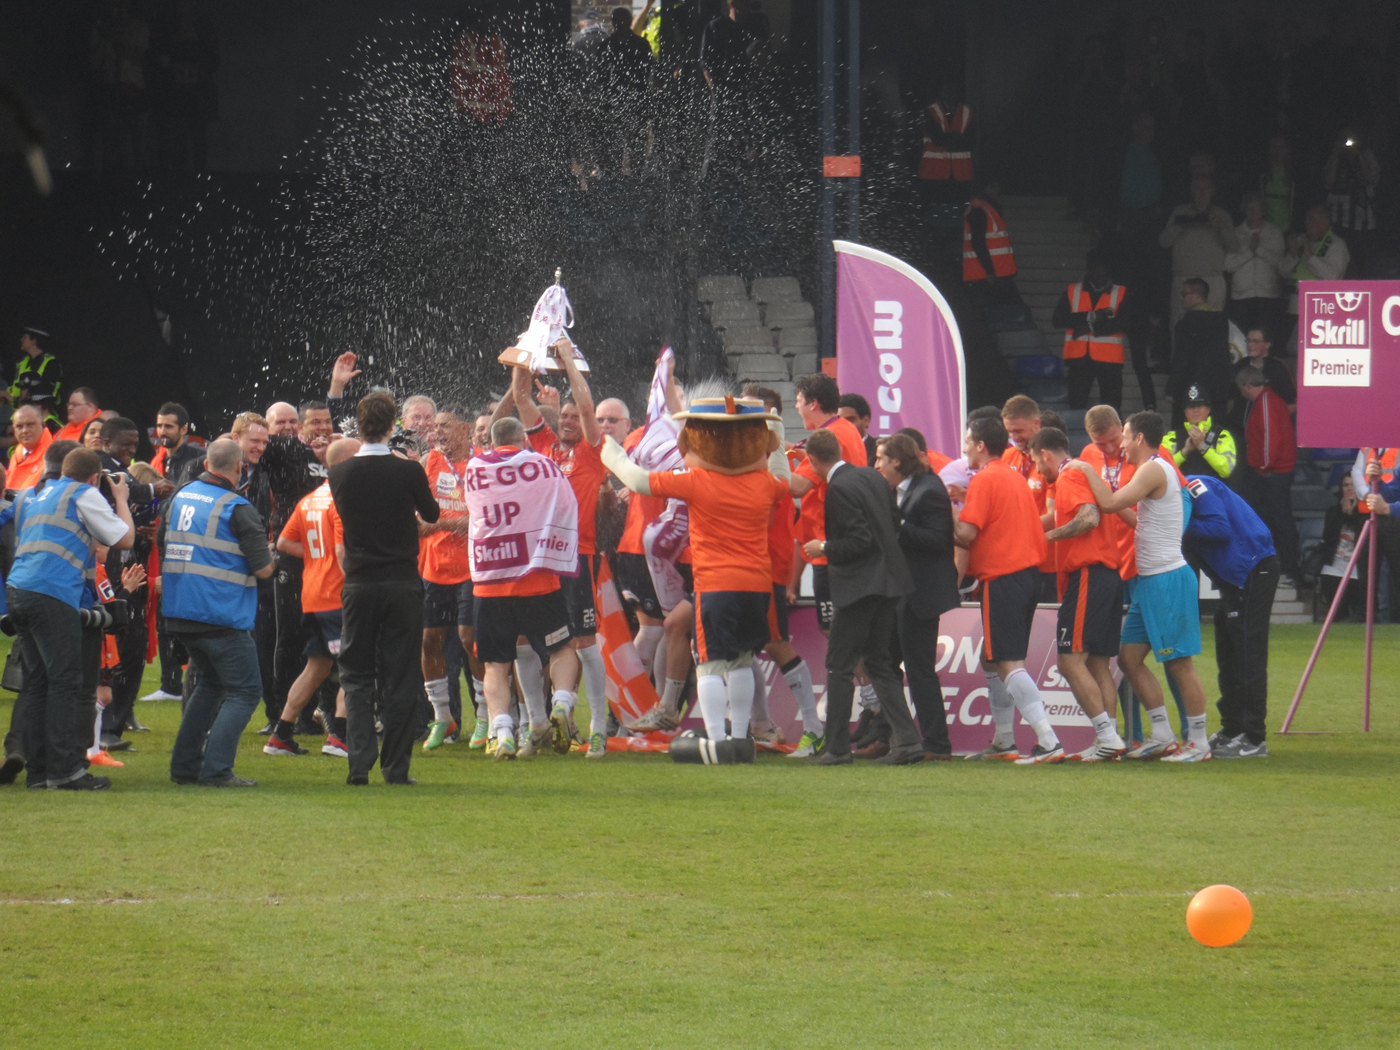 https://upload.wikimedia.org/wikipedia/commons/3/3c/Luton_Town_lift_Conference_championship_trophy_2014.jpg